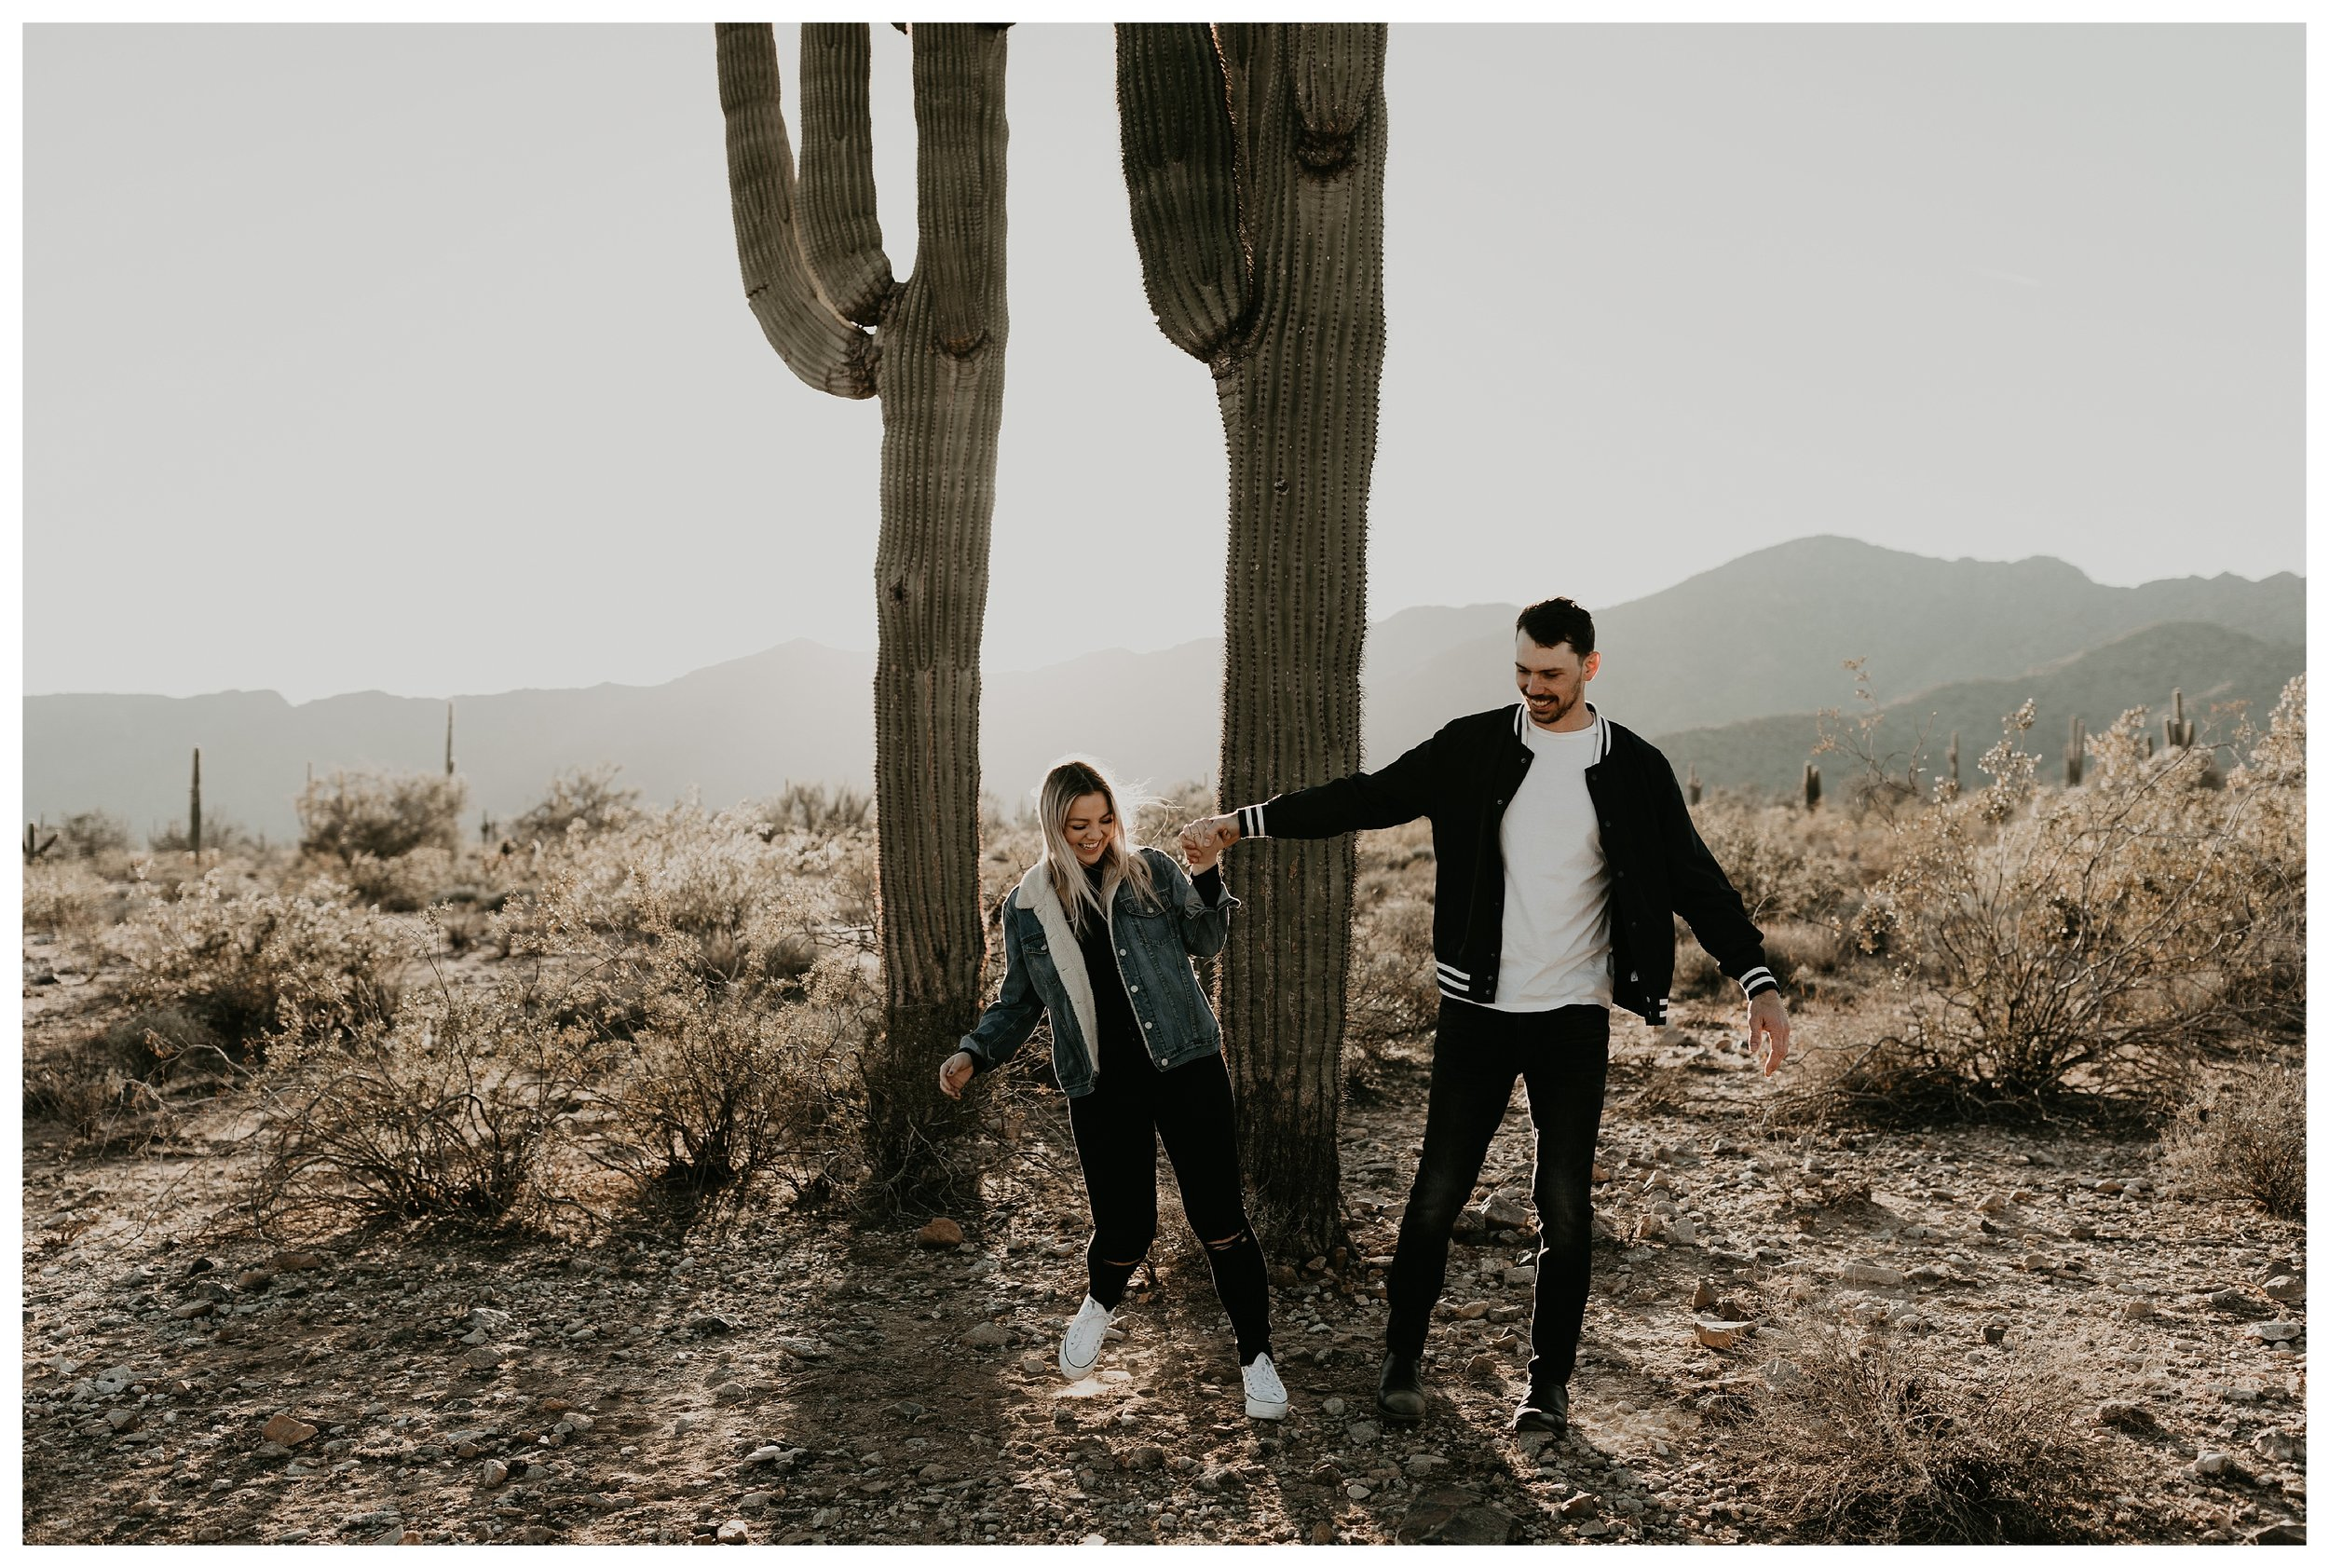 White tank engagement photos with mountains and cacti